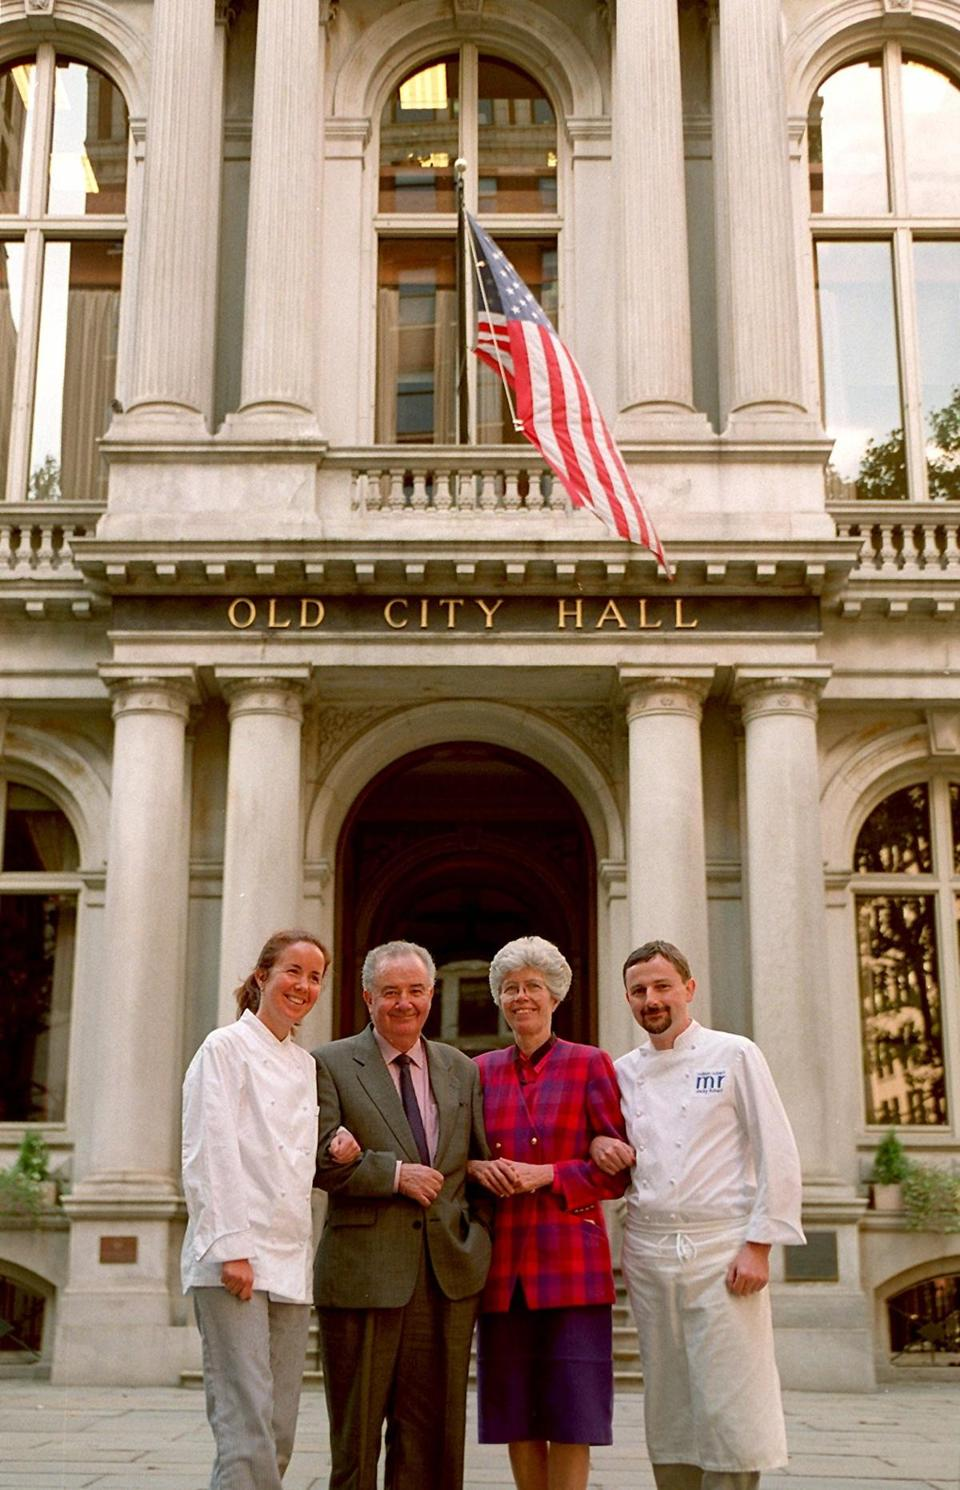 9/23/96-BOSTON- Members of the Maison Robert restaurant dynasty located at Old City Hall are Lucien and Ann Robert, center, their daughter Andree and nephew Jacky, right.